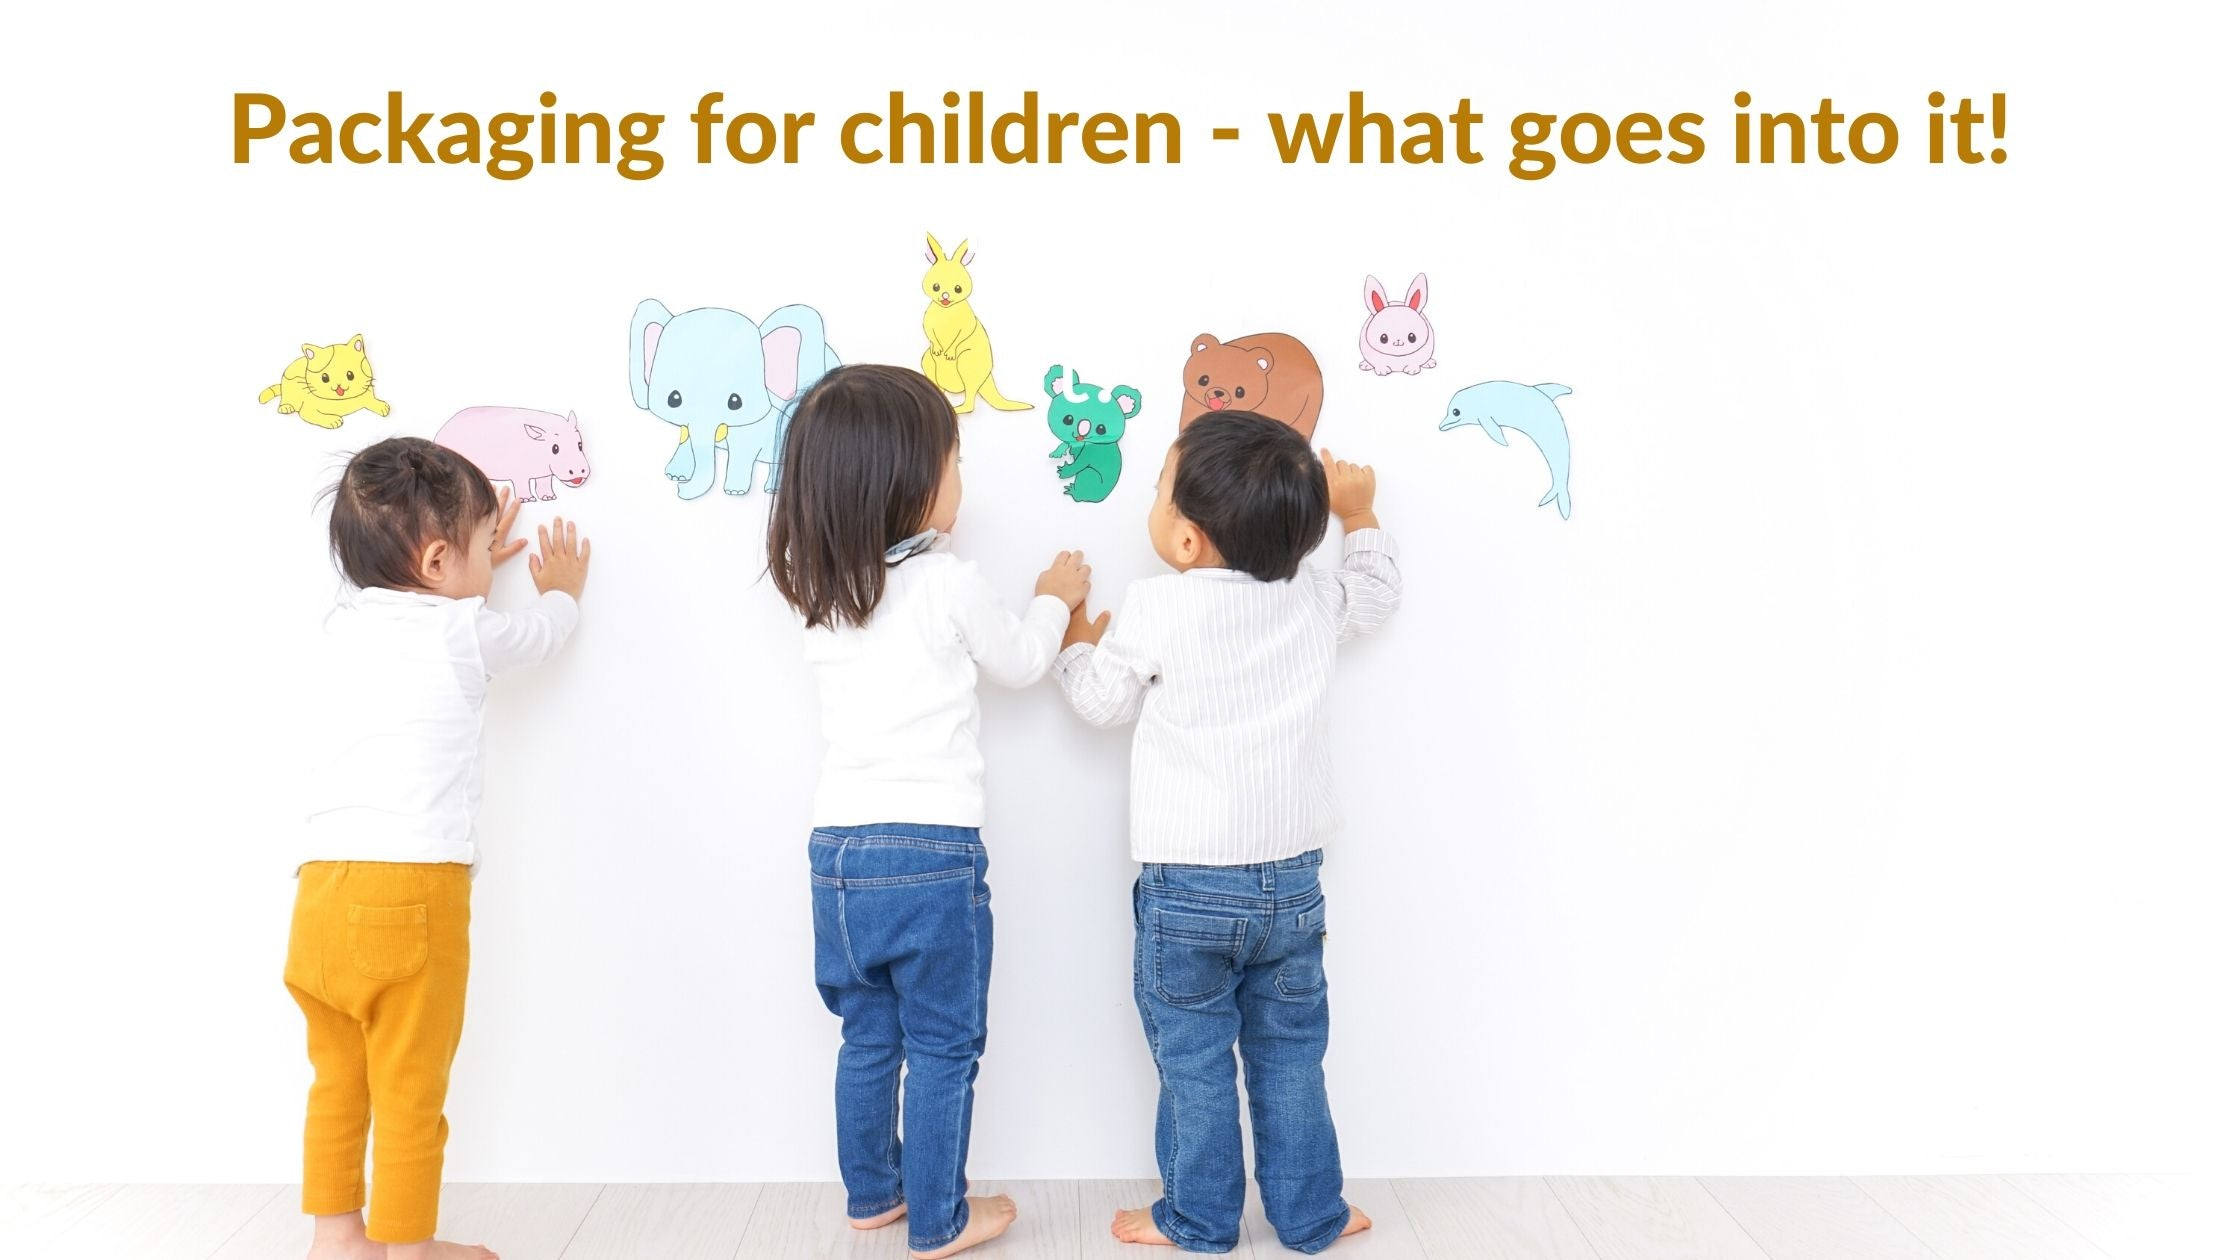 Packaging for children - what goes into it!